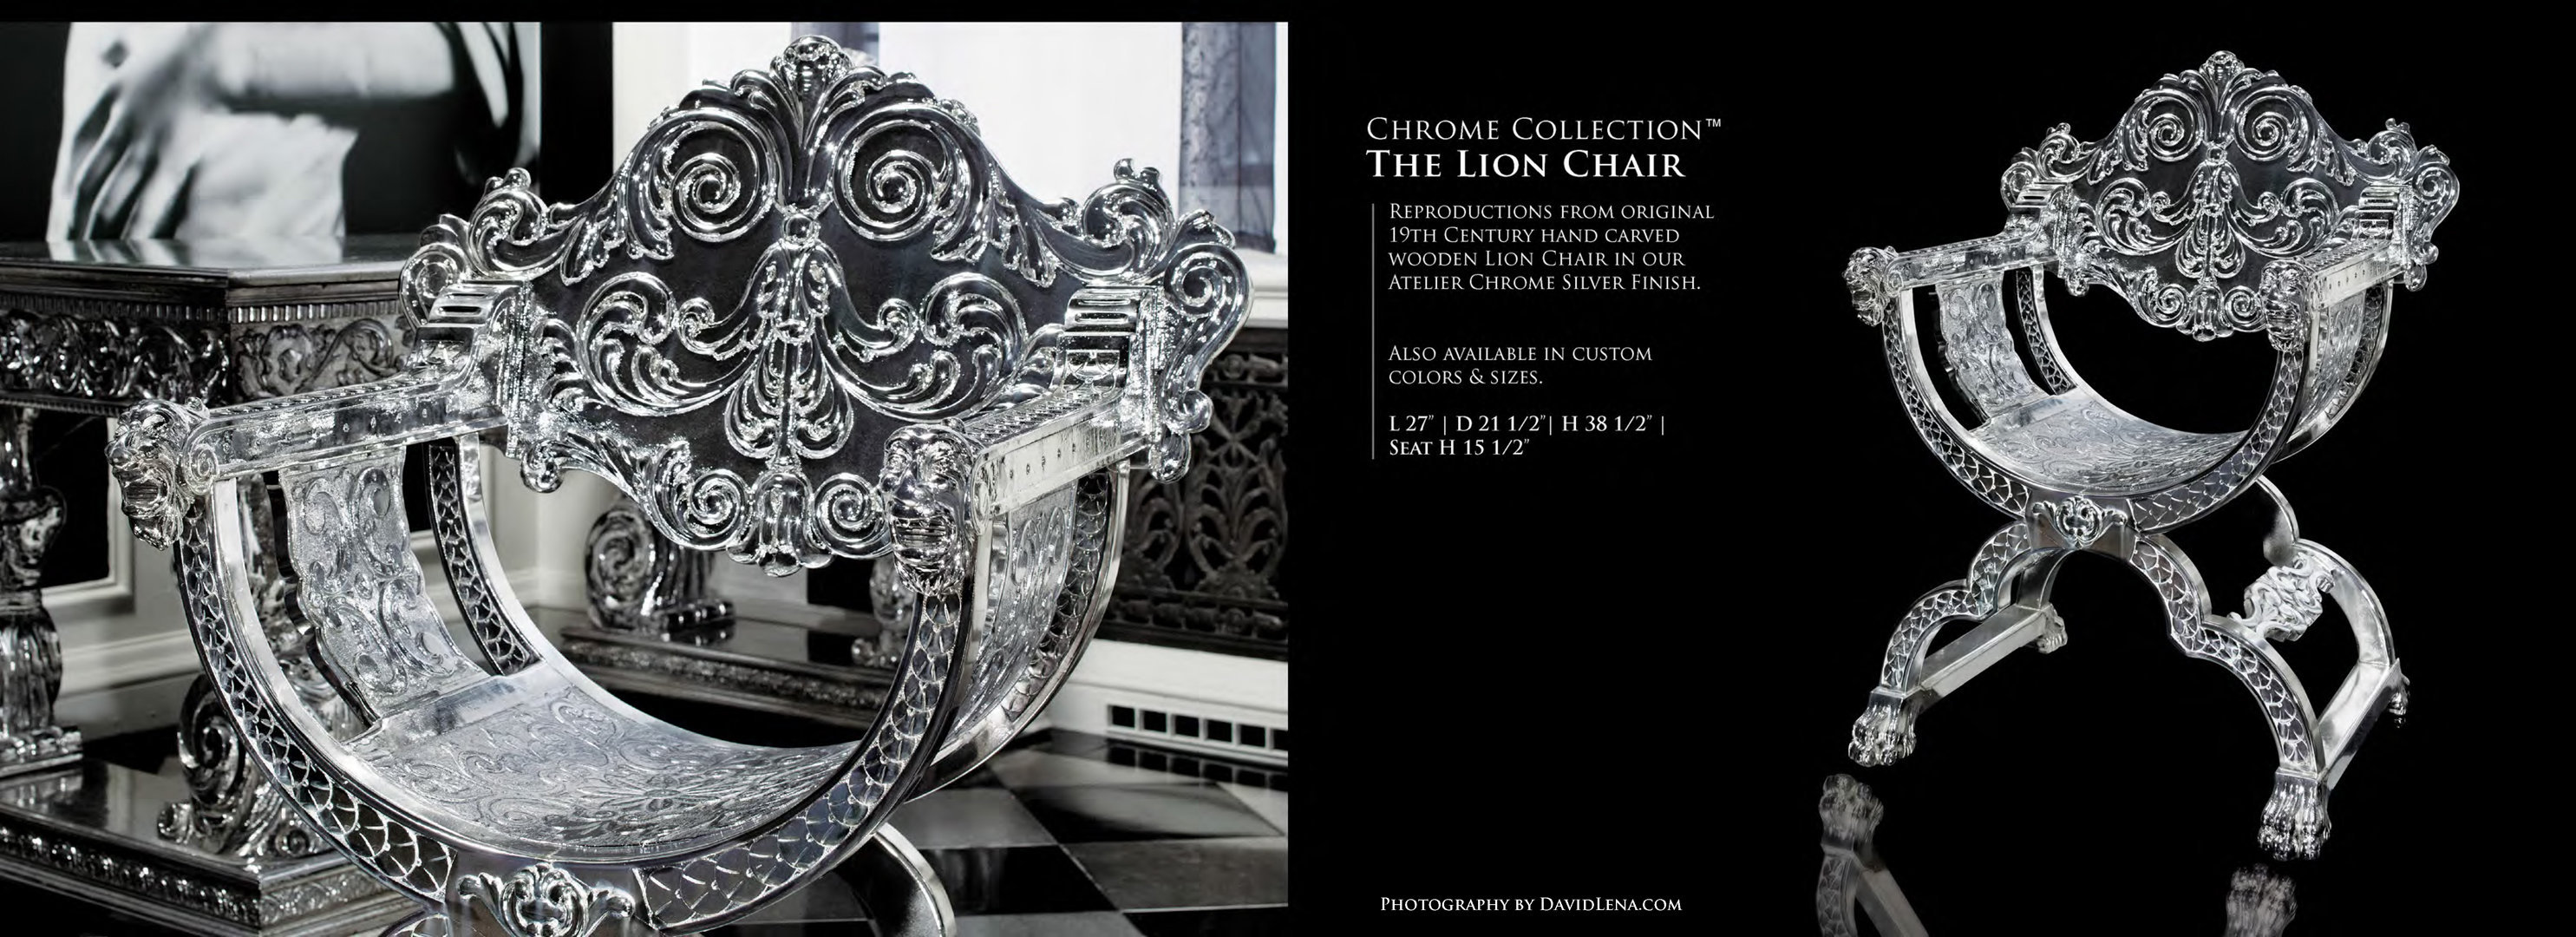 The Lion Chair